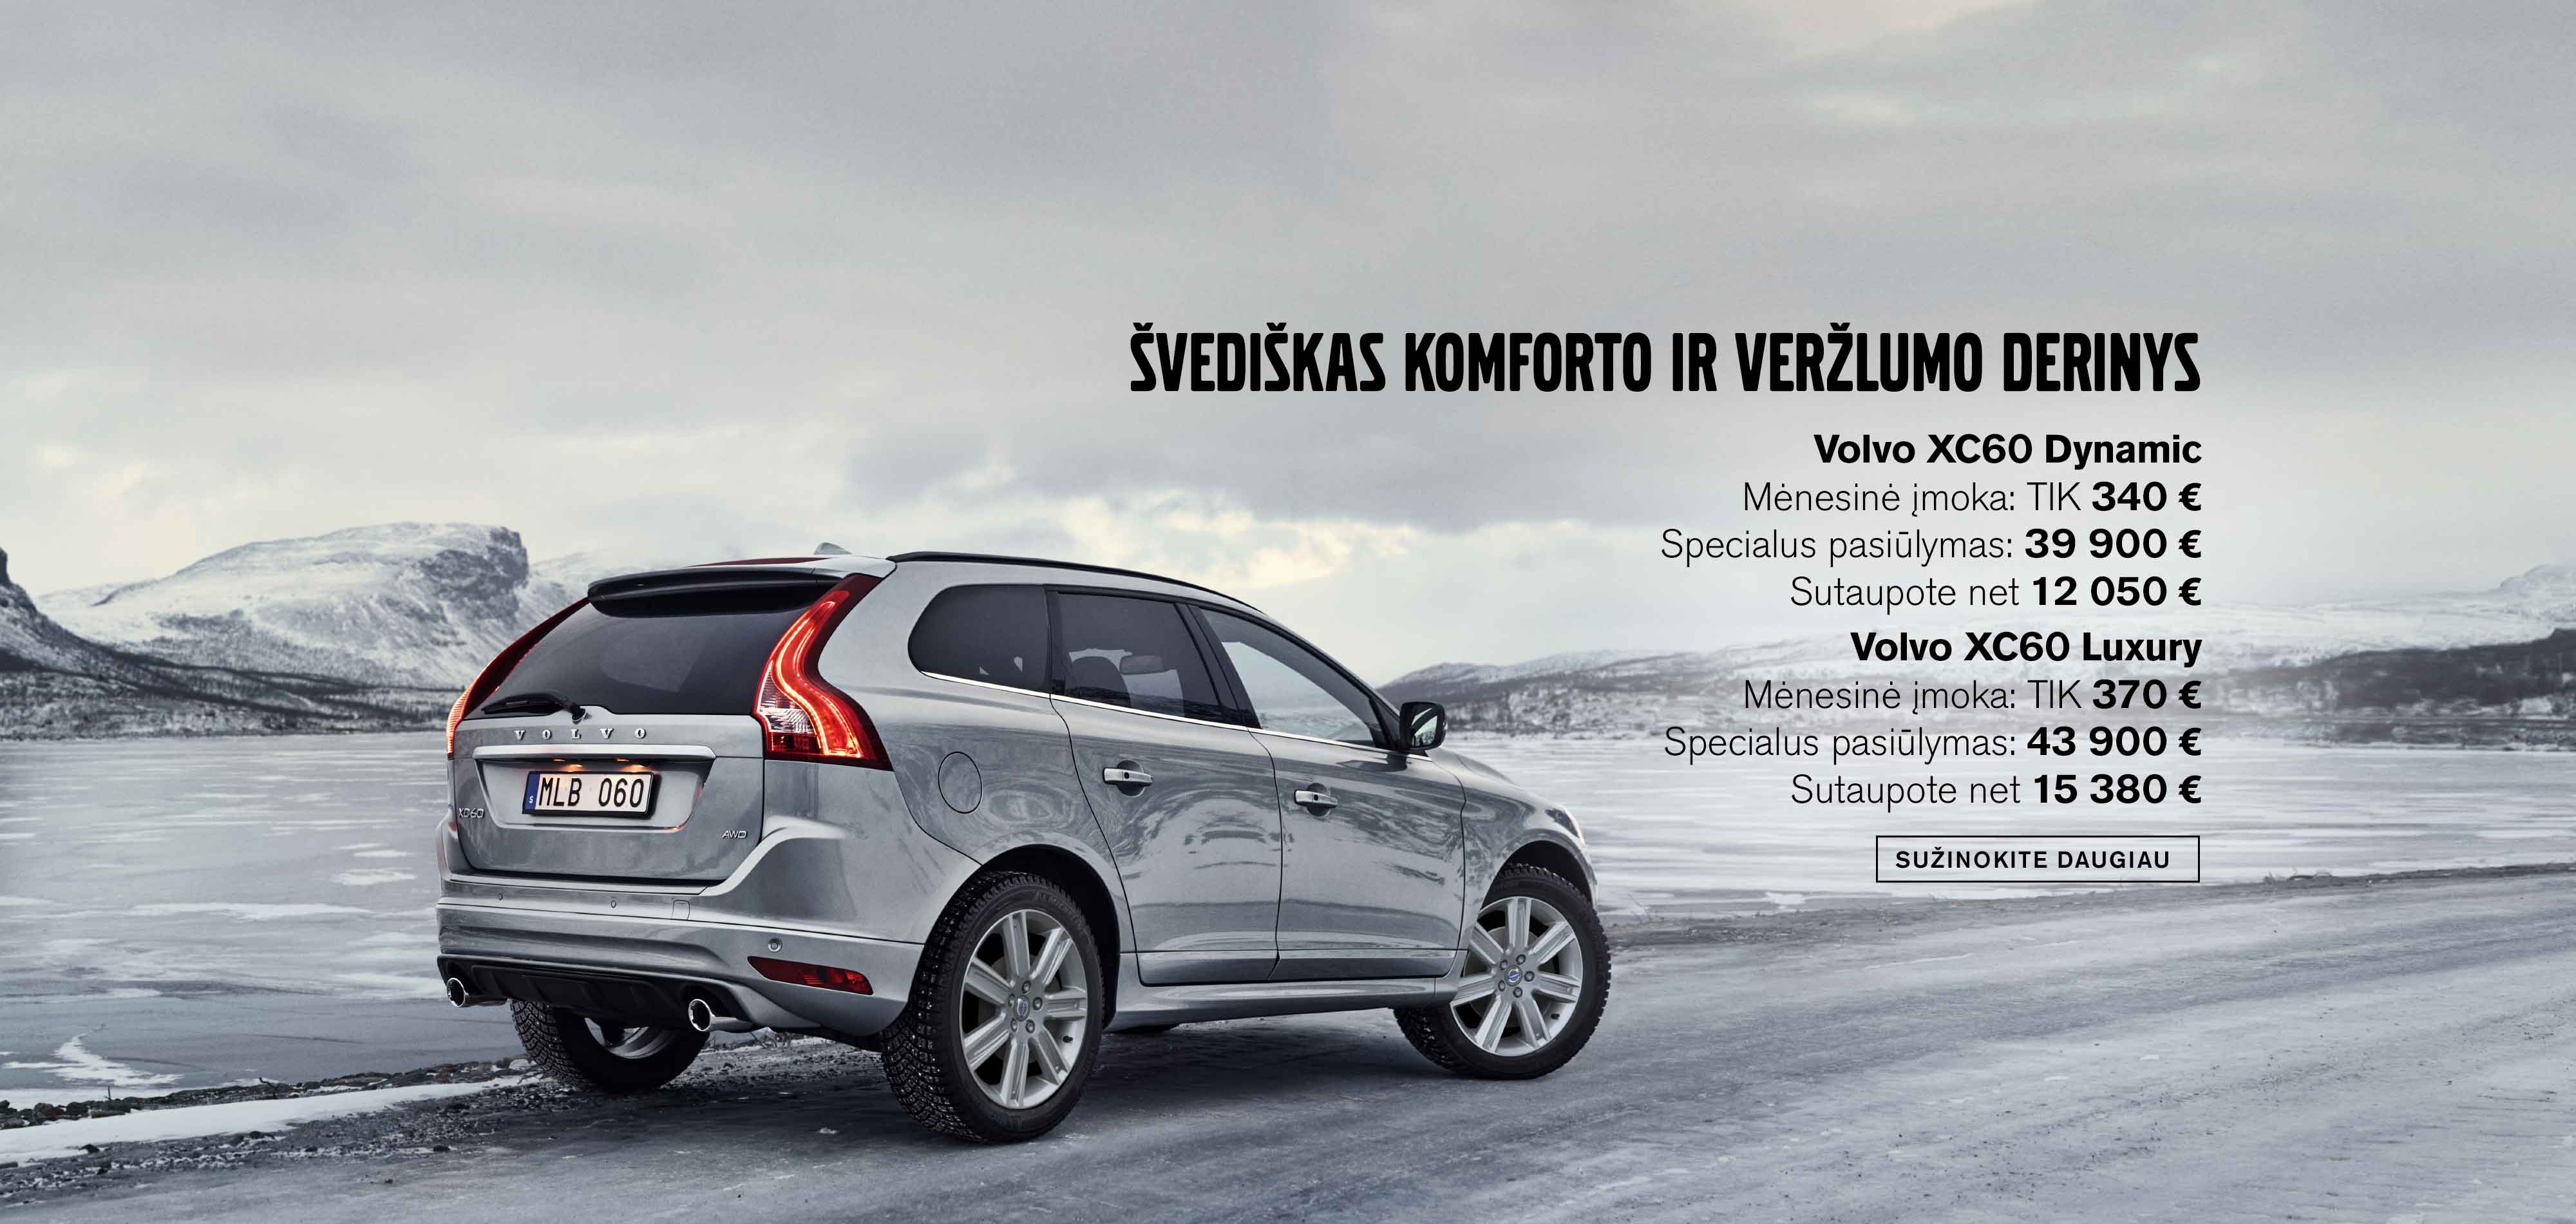 Volvo XC60 Dynamic ir Luxury